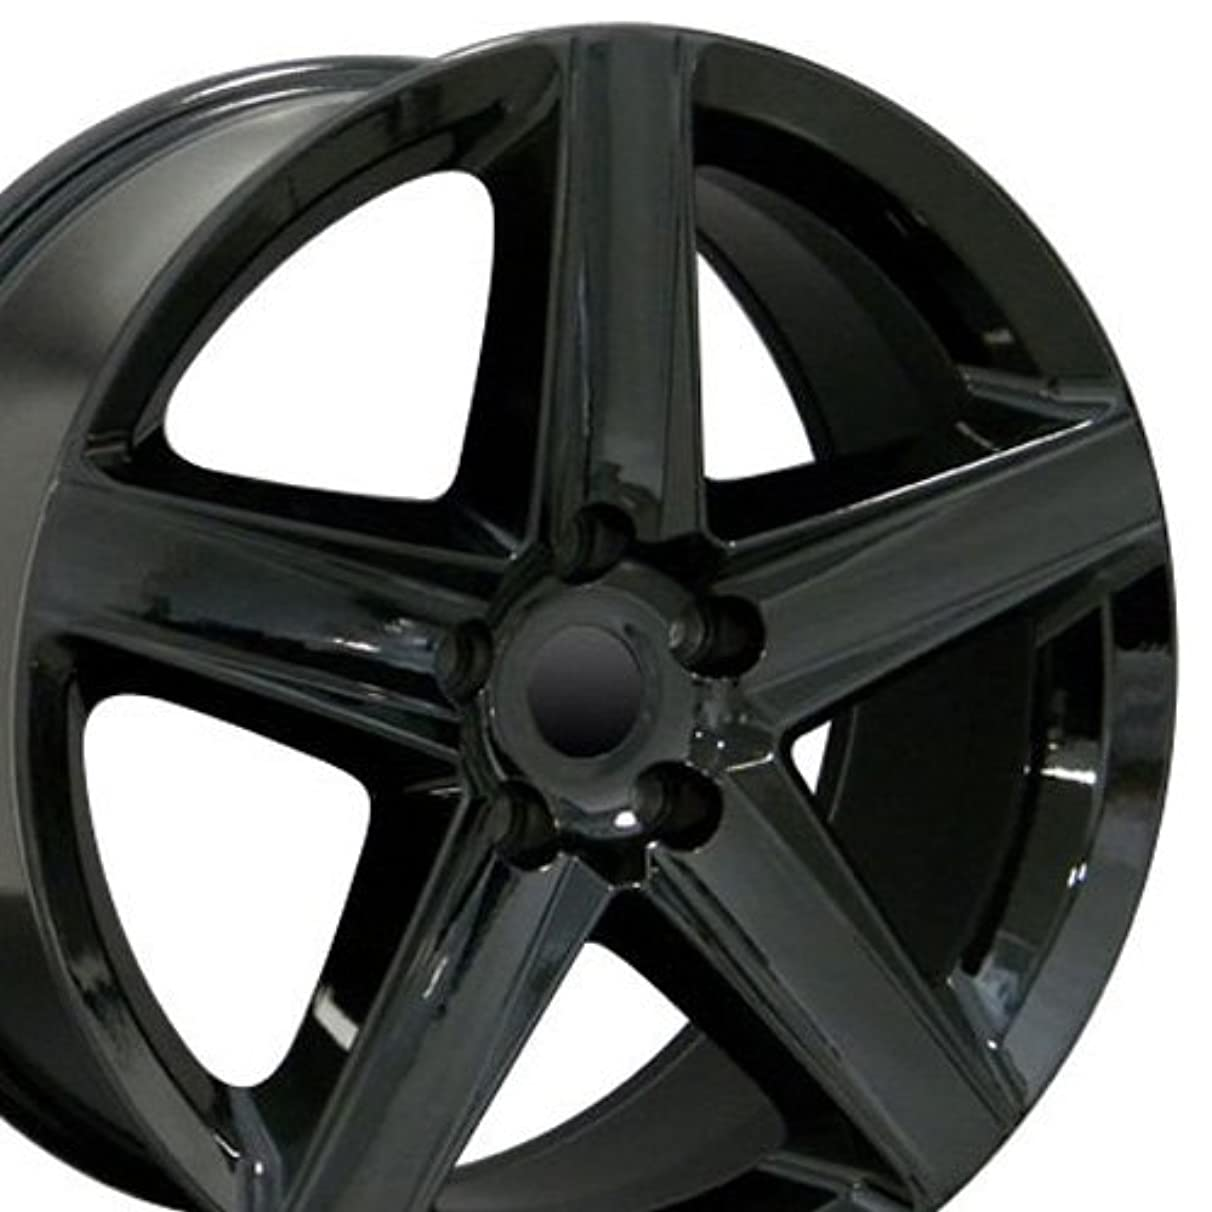 20x9 Wheels Fit Jeep Grand Cherokee - Grand Cherokee Style Black Rims, Hollander 9082 - SET